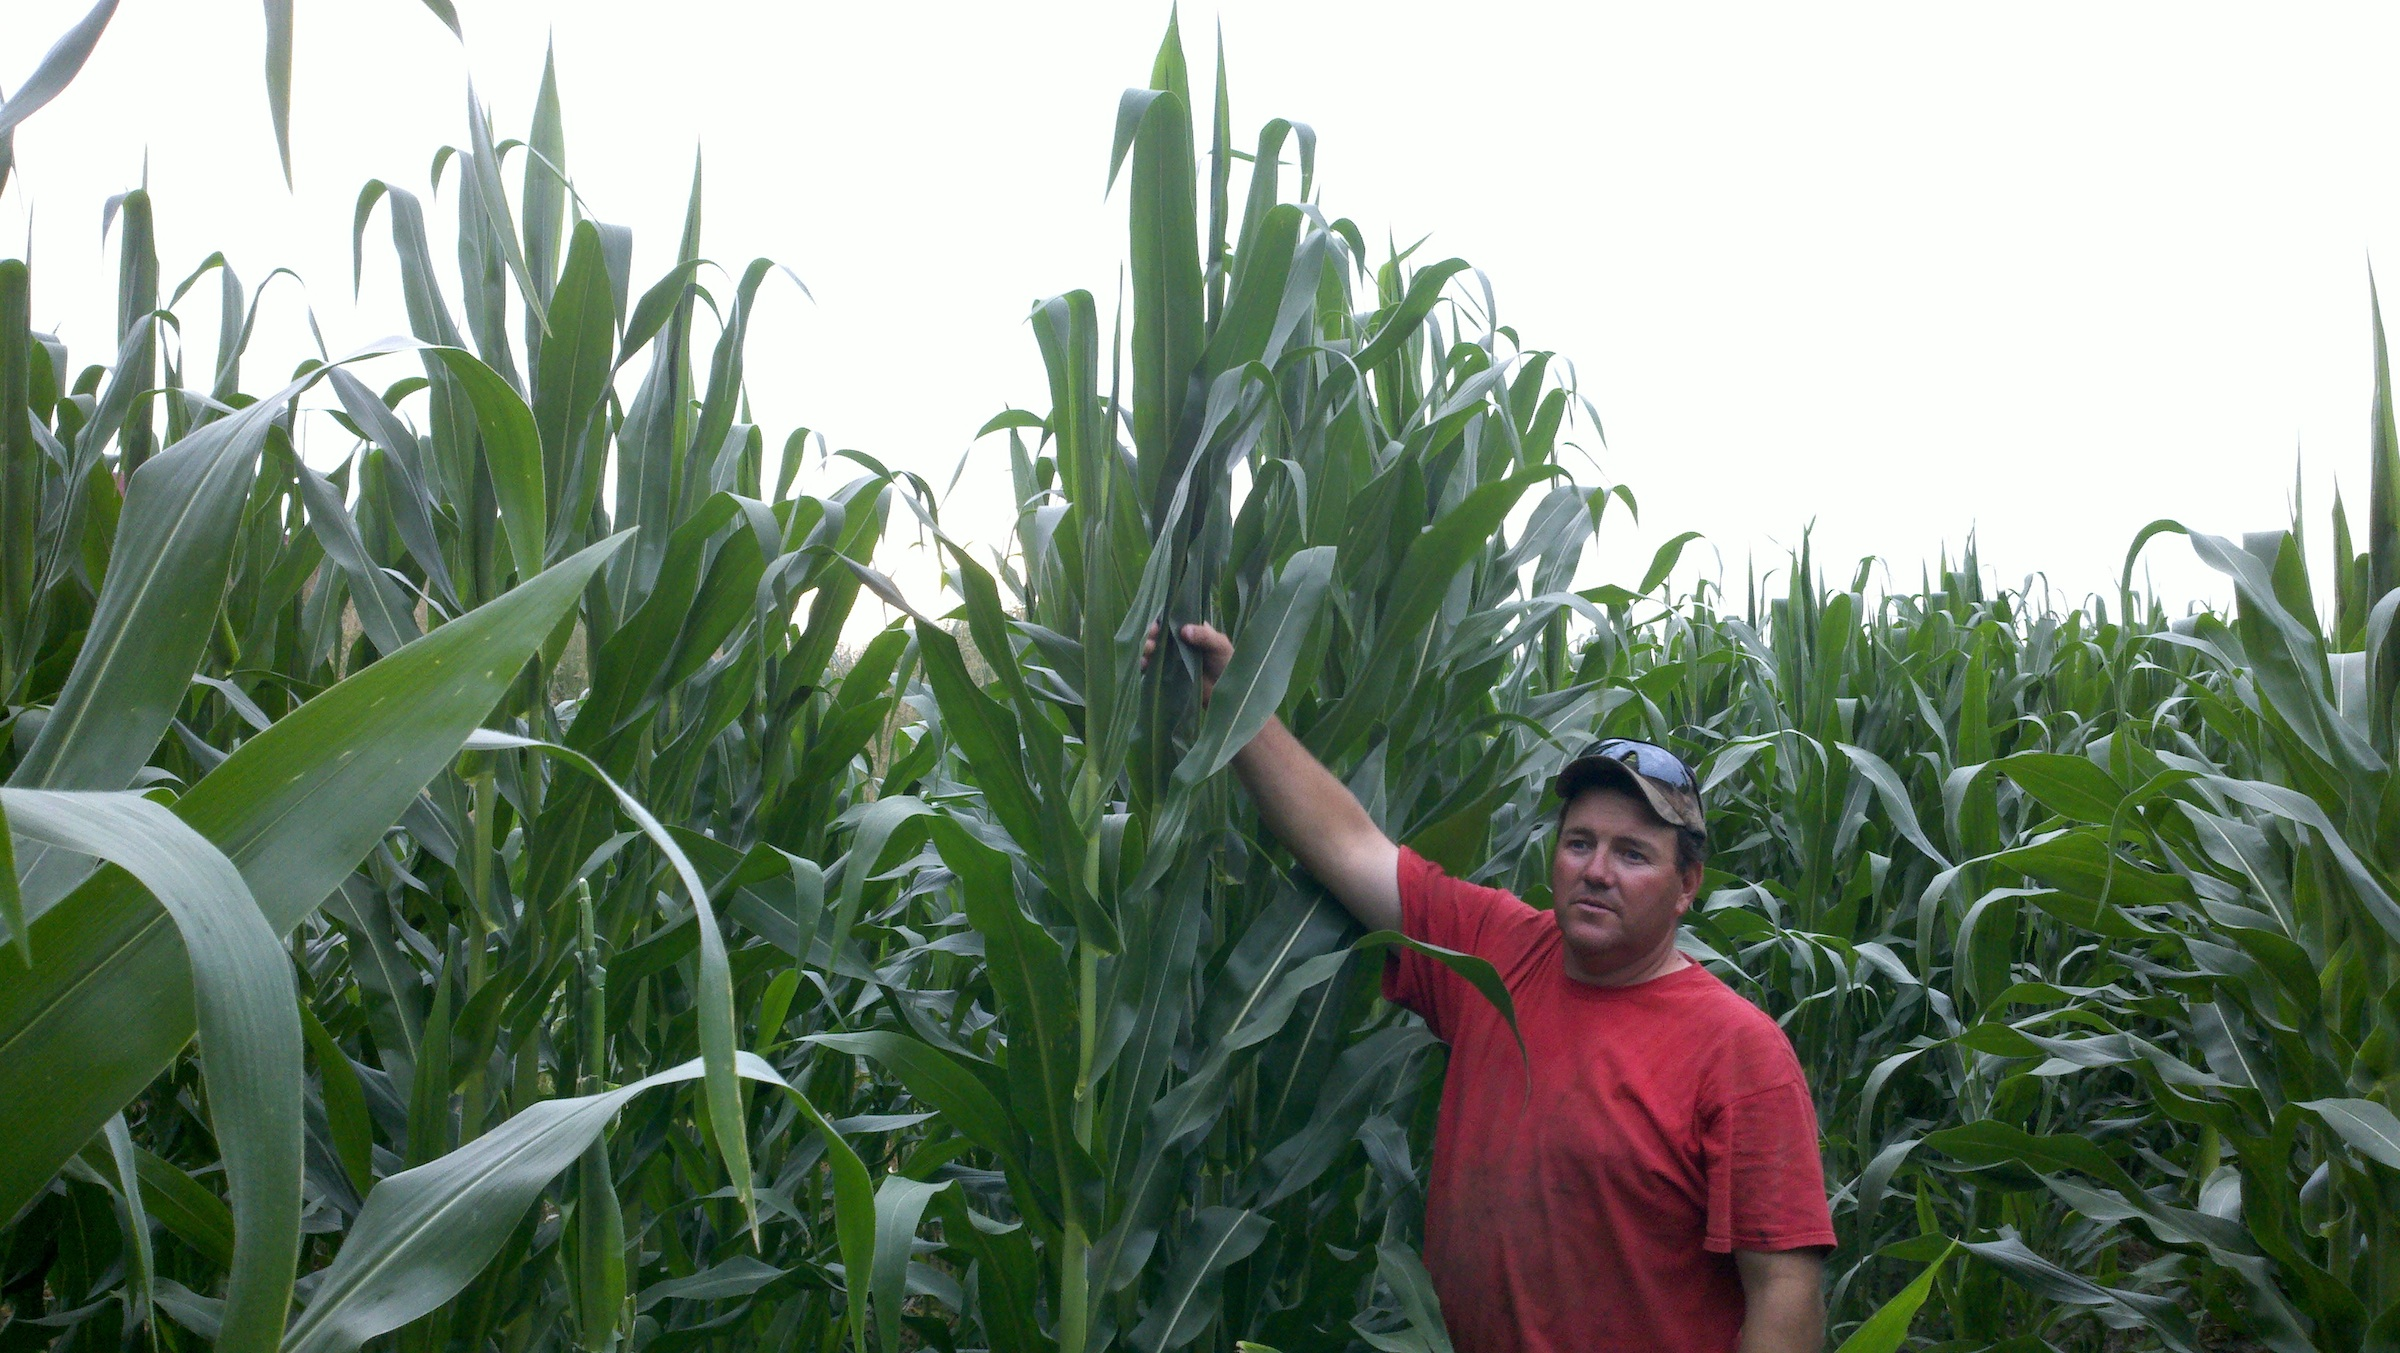 Tall Corn Iowa.jpg